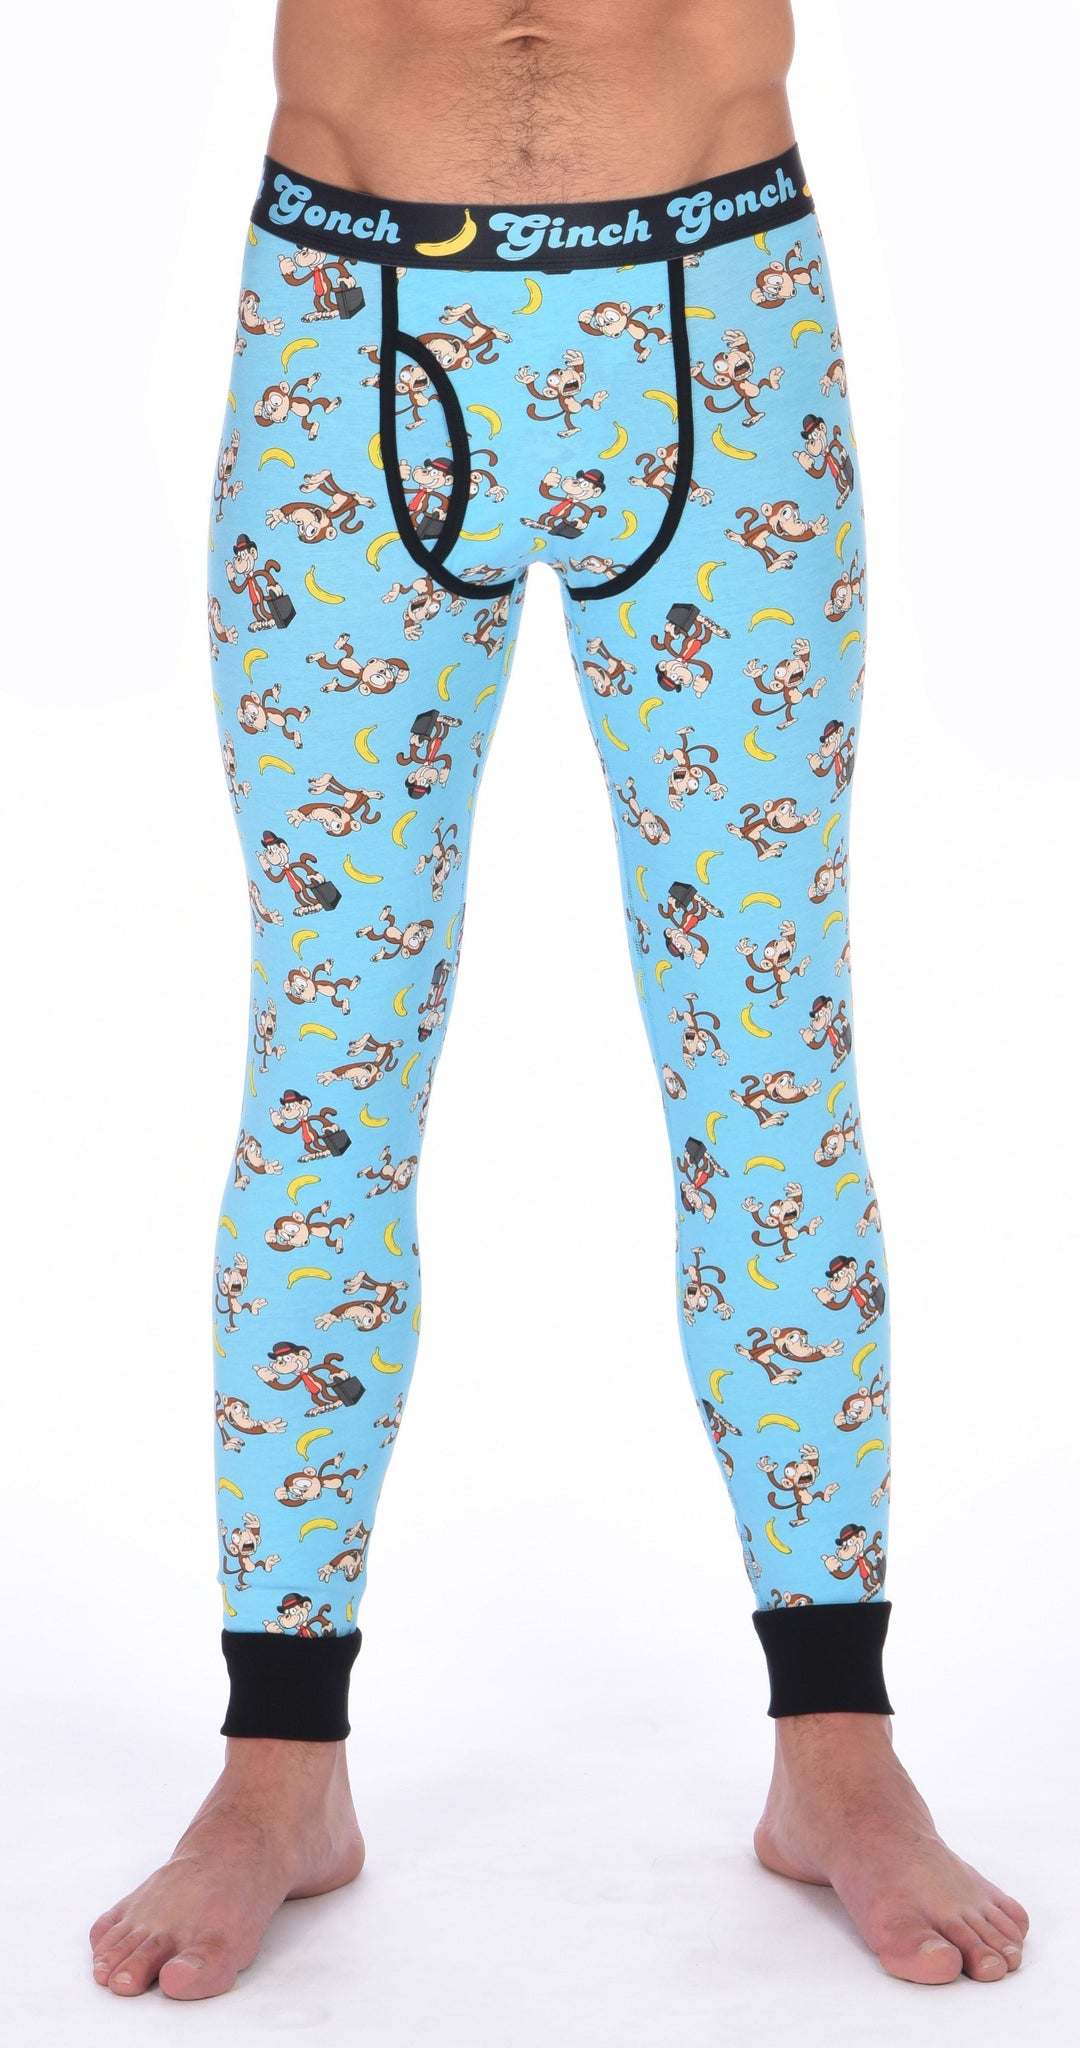 Ginch Gonch Monkey Business Men's Leggings Long Johns Underwear with blue background, monkeys, and bananas. Black trim and printed waistband with Ginch Gonch and bananas. Front.